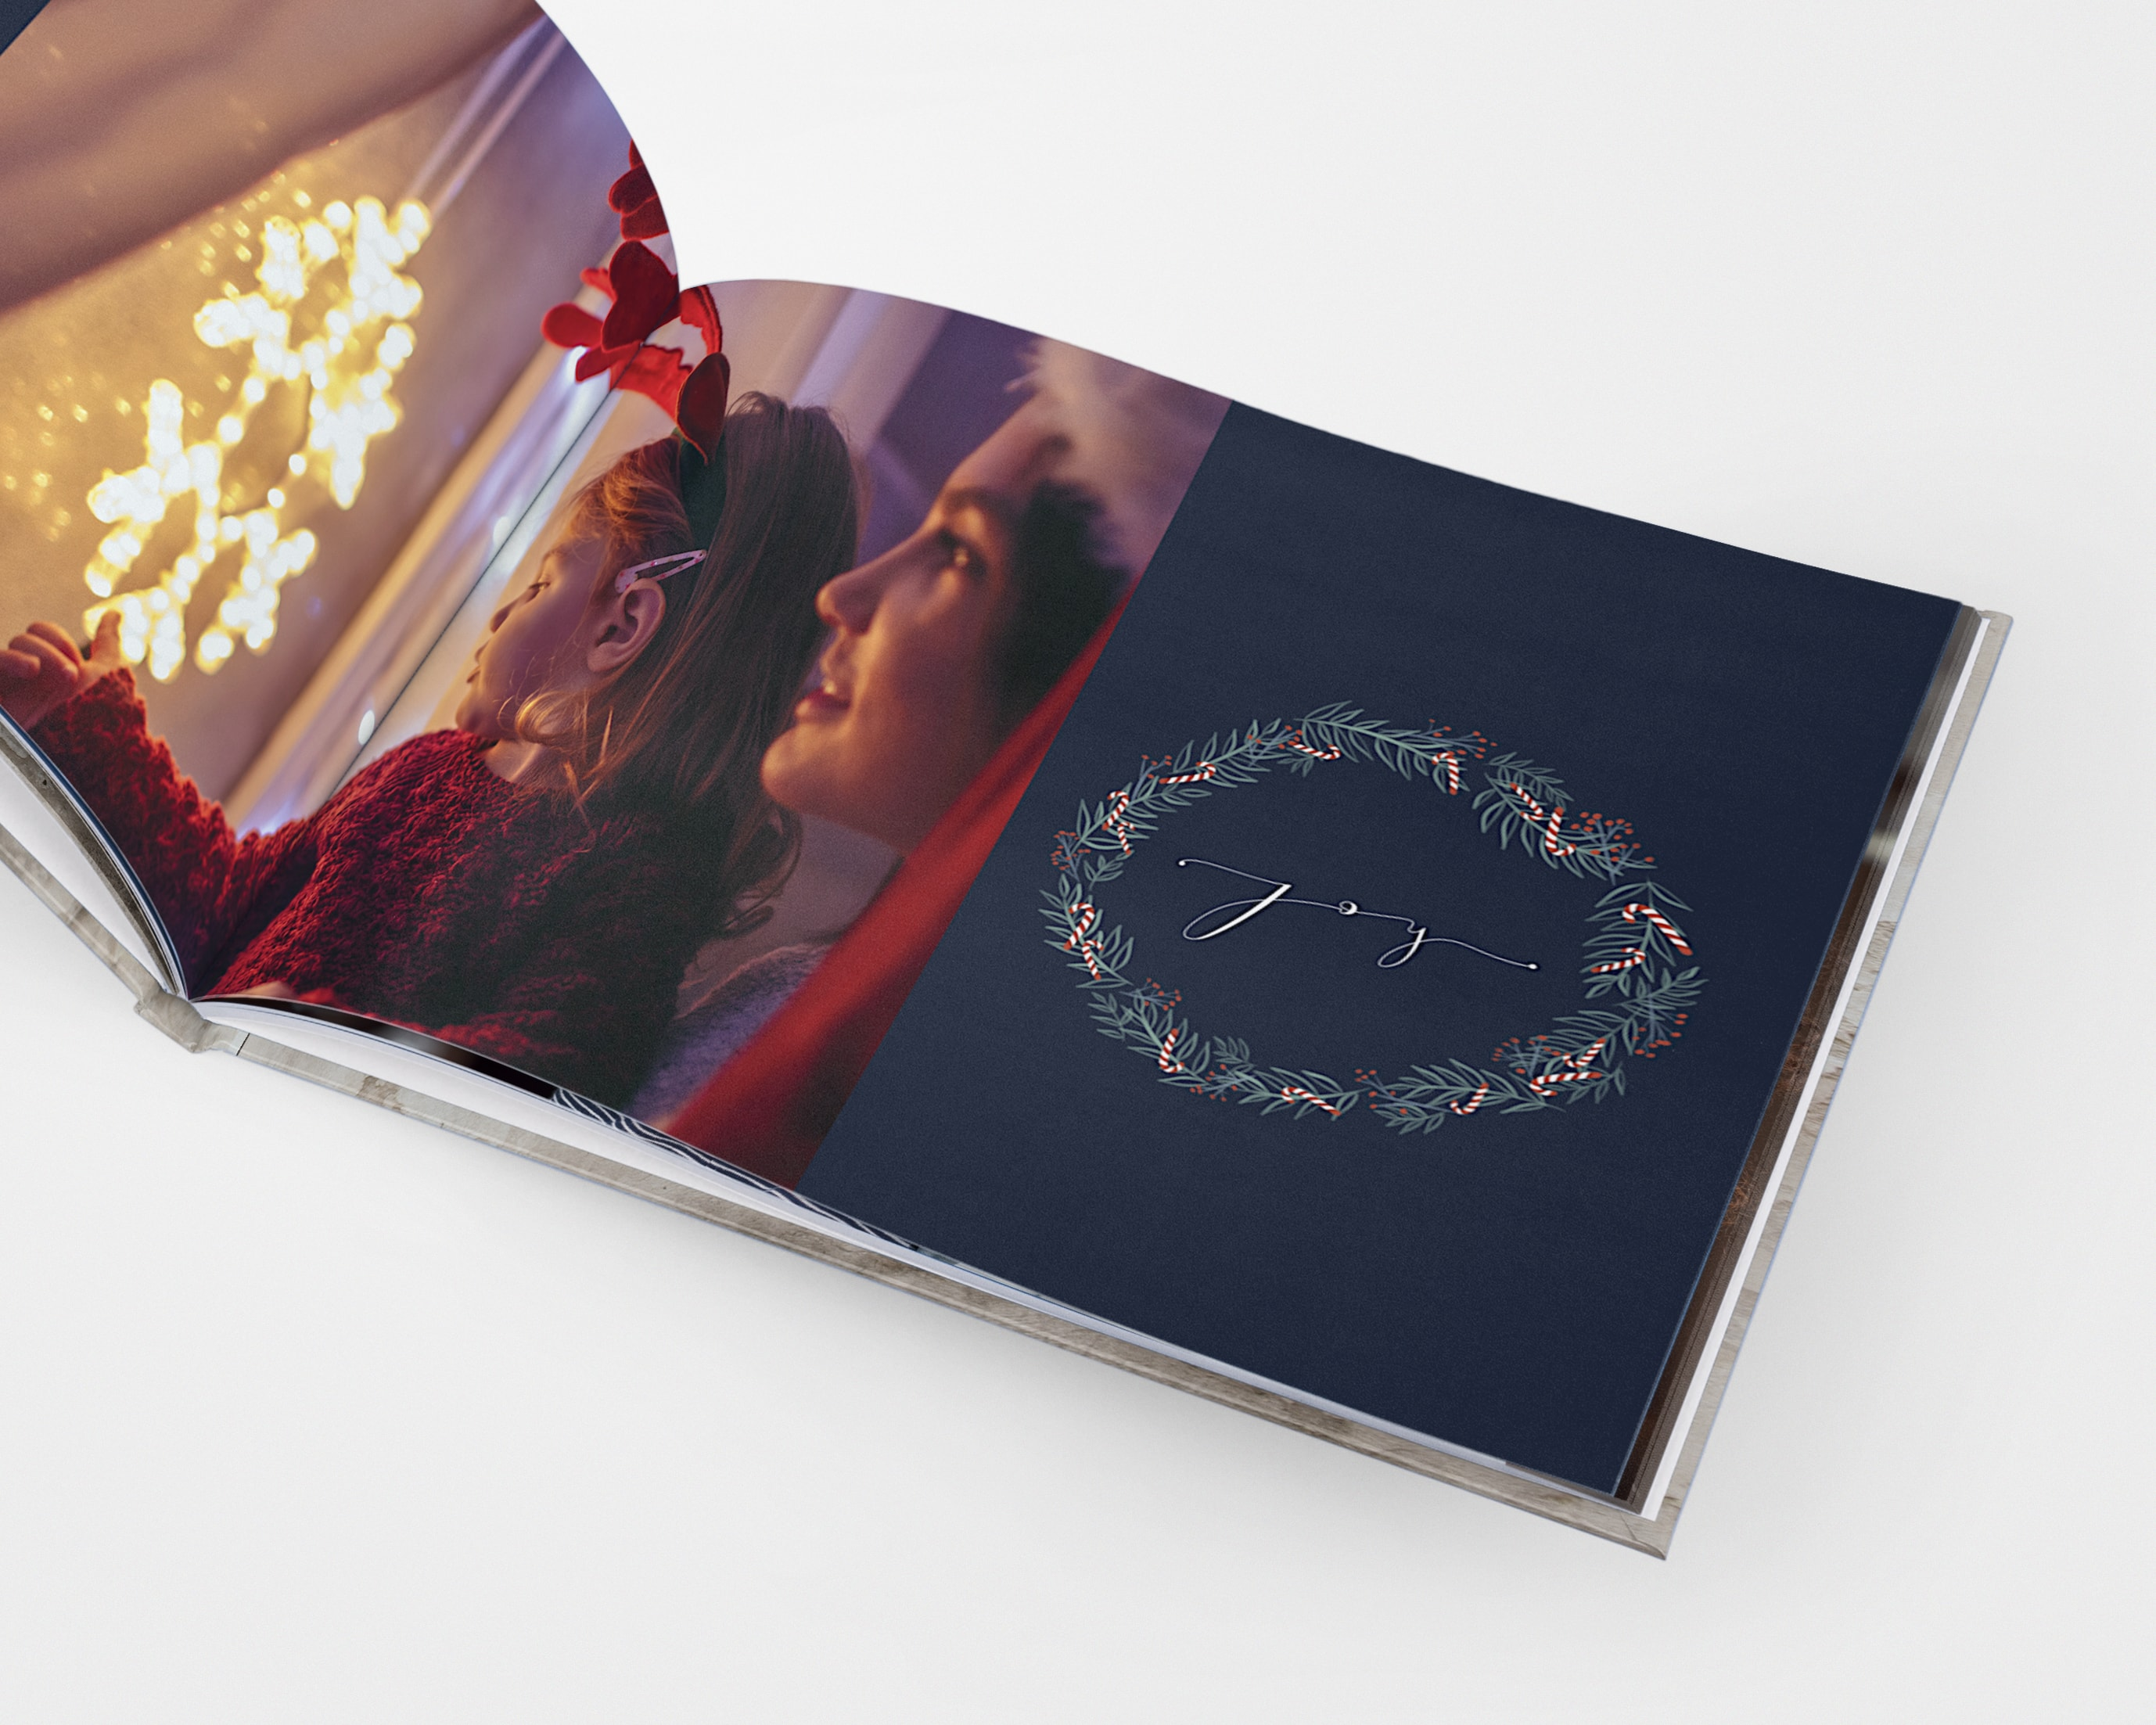 A Christmas-themed photo book with festive illustrations